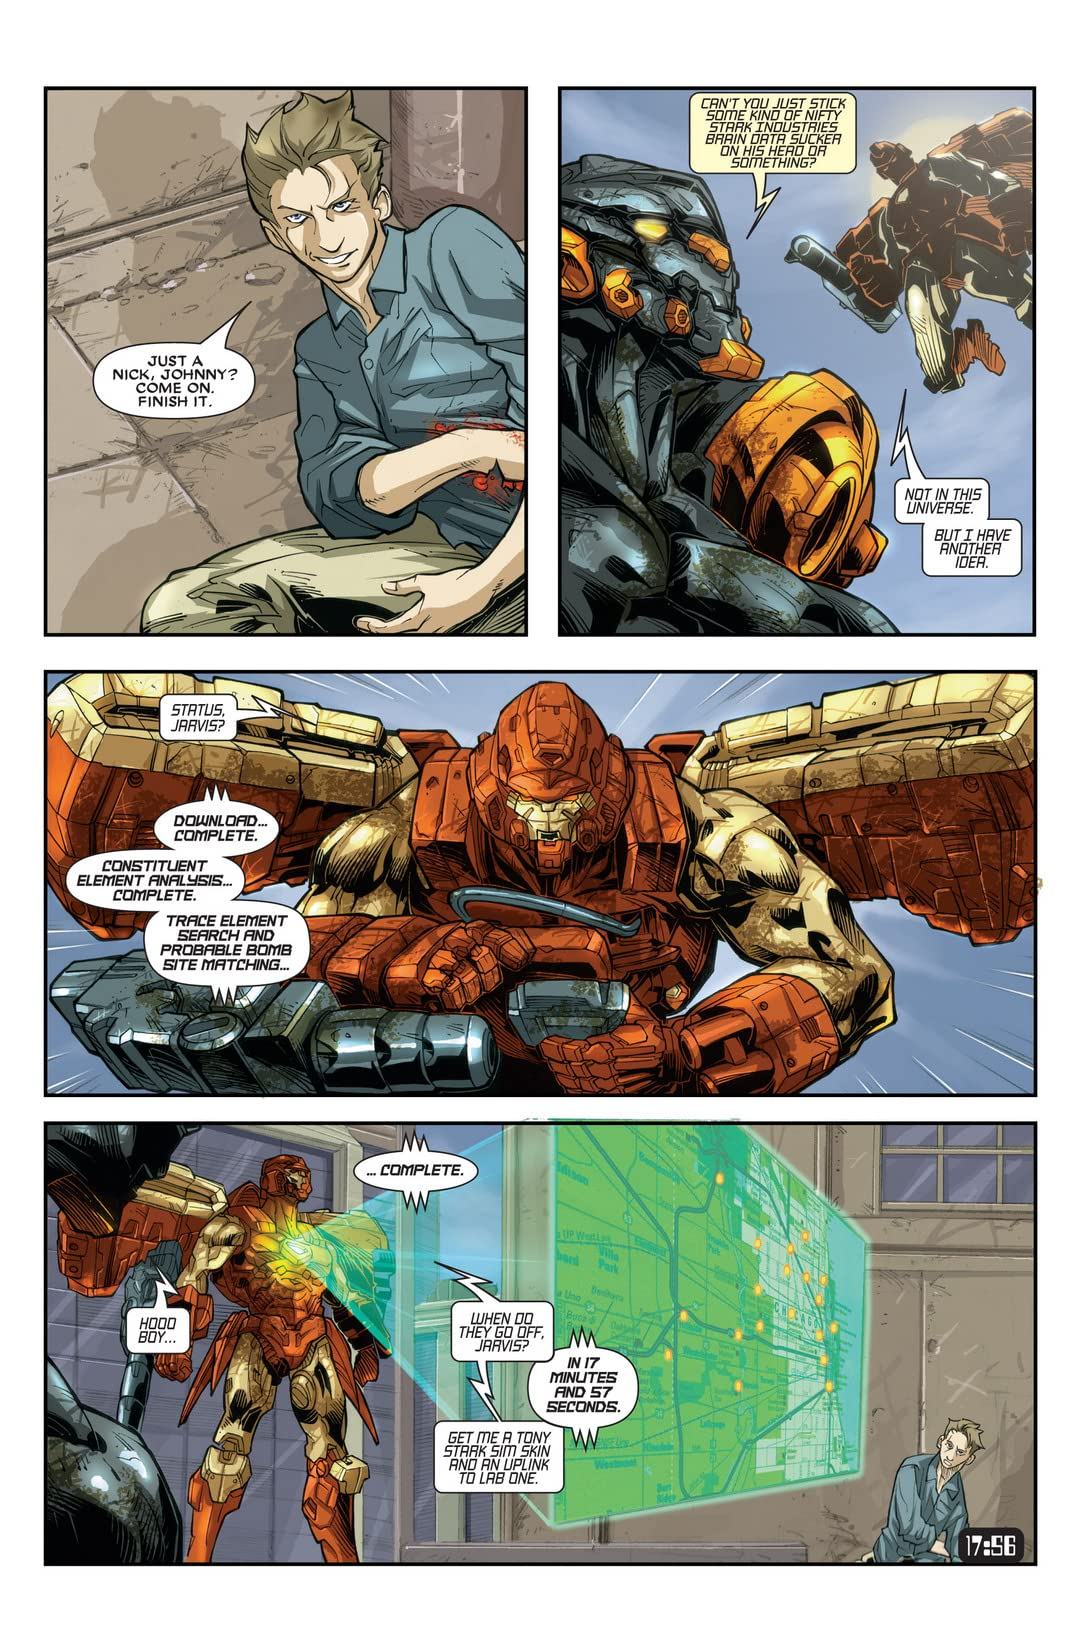 Iron Man: House Of M #3 (of 3)